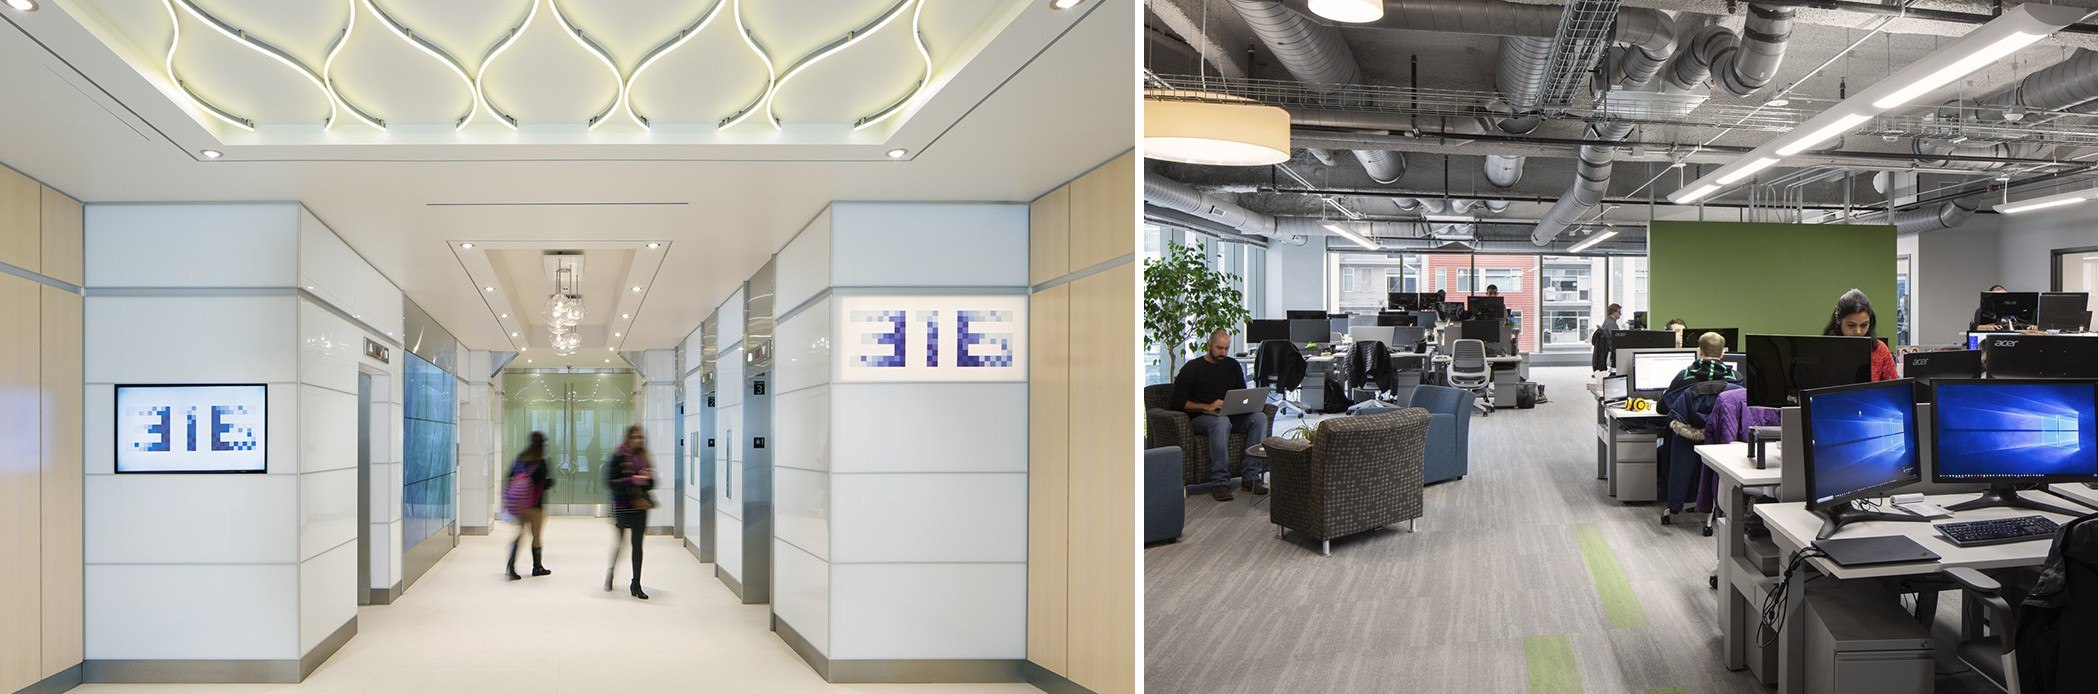 Two images showing an office and lobby